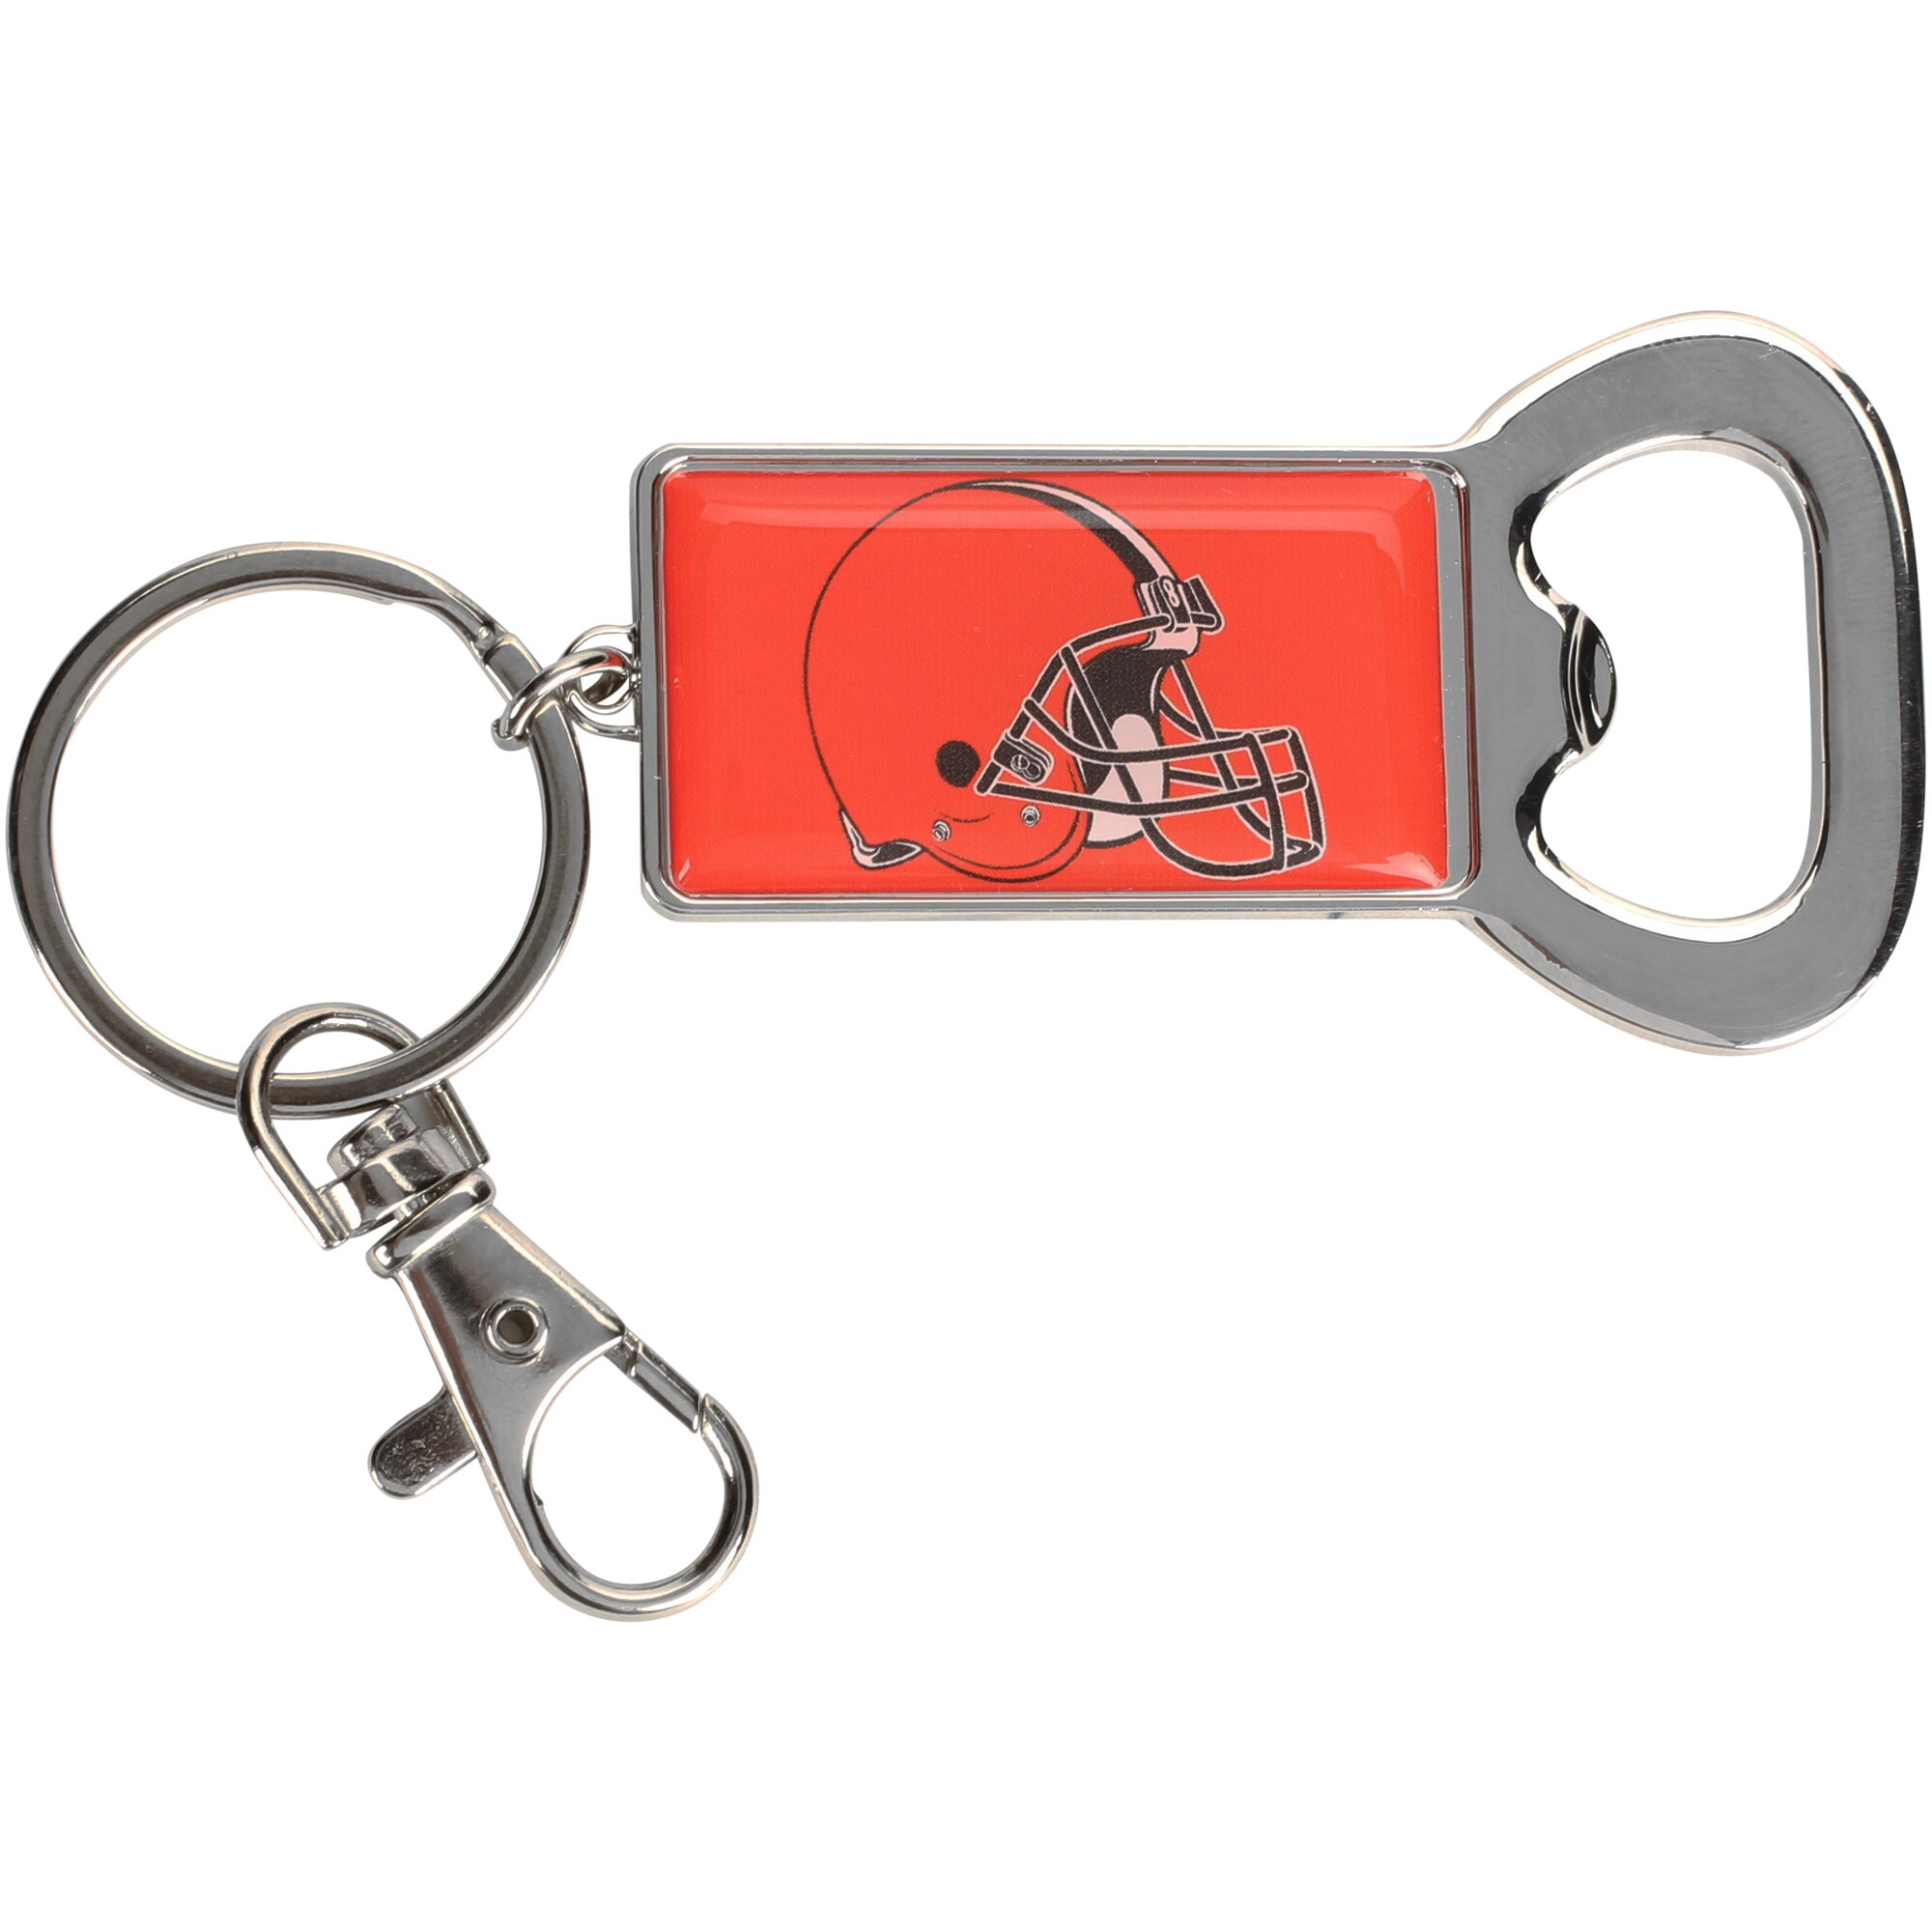 Cleveland Browns WinCraft Bottle Opener Key Ring Keychain